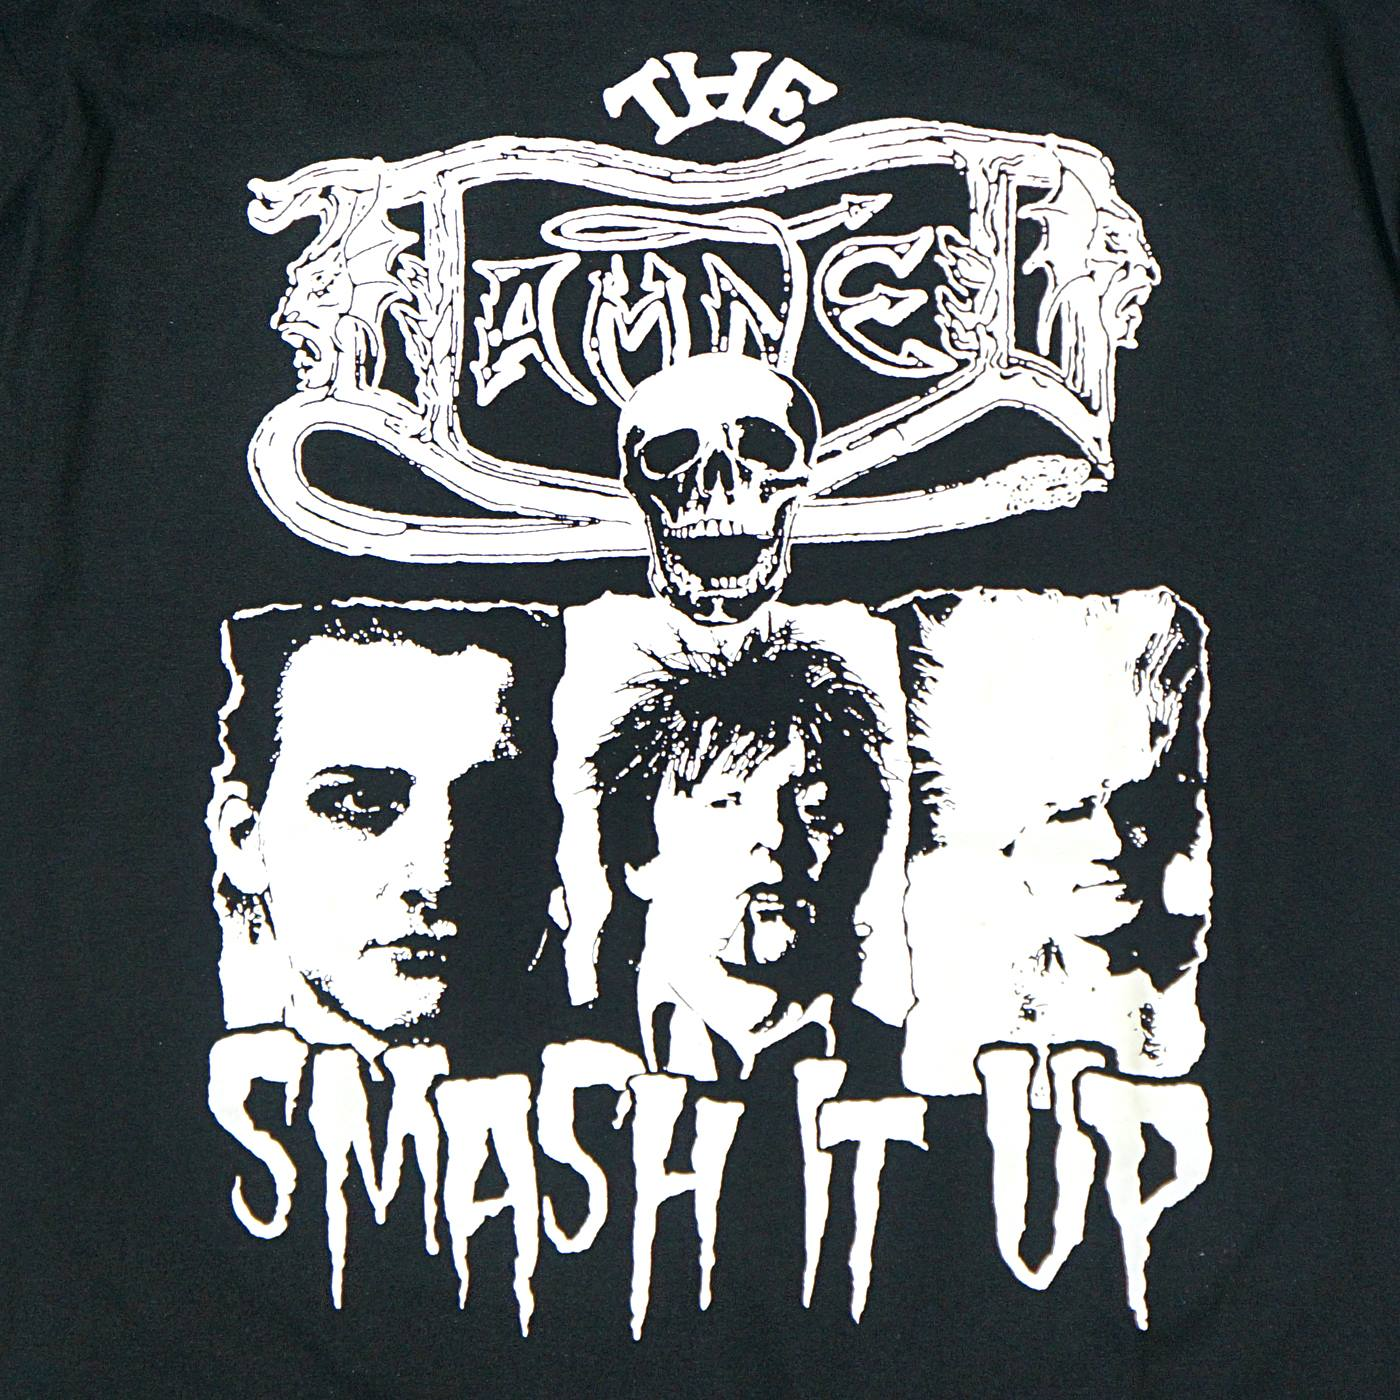 DAMNED Tシャツ Smash It Up-Glow In The Dark-Black